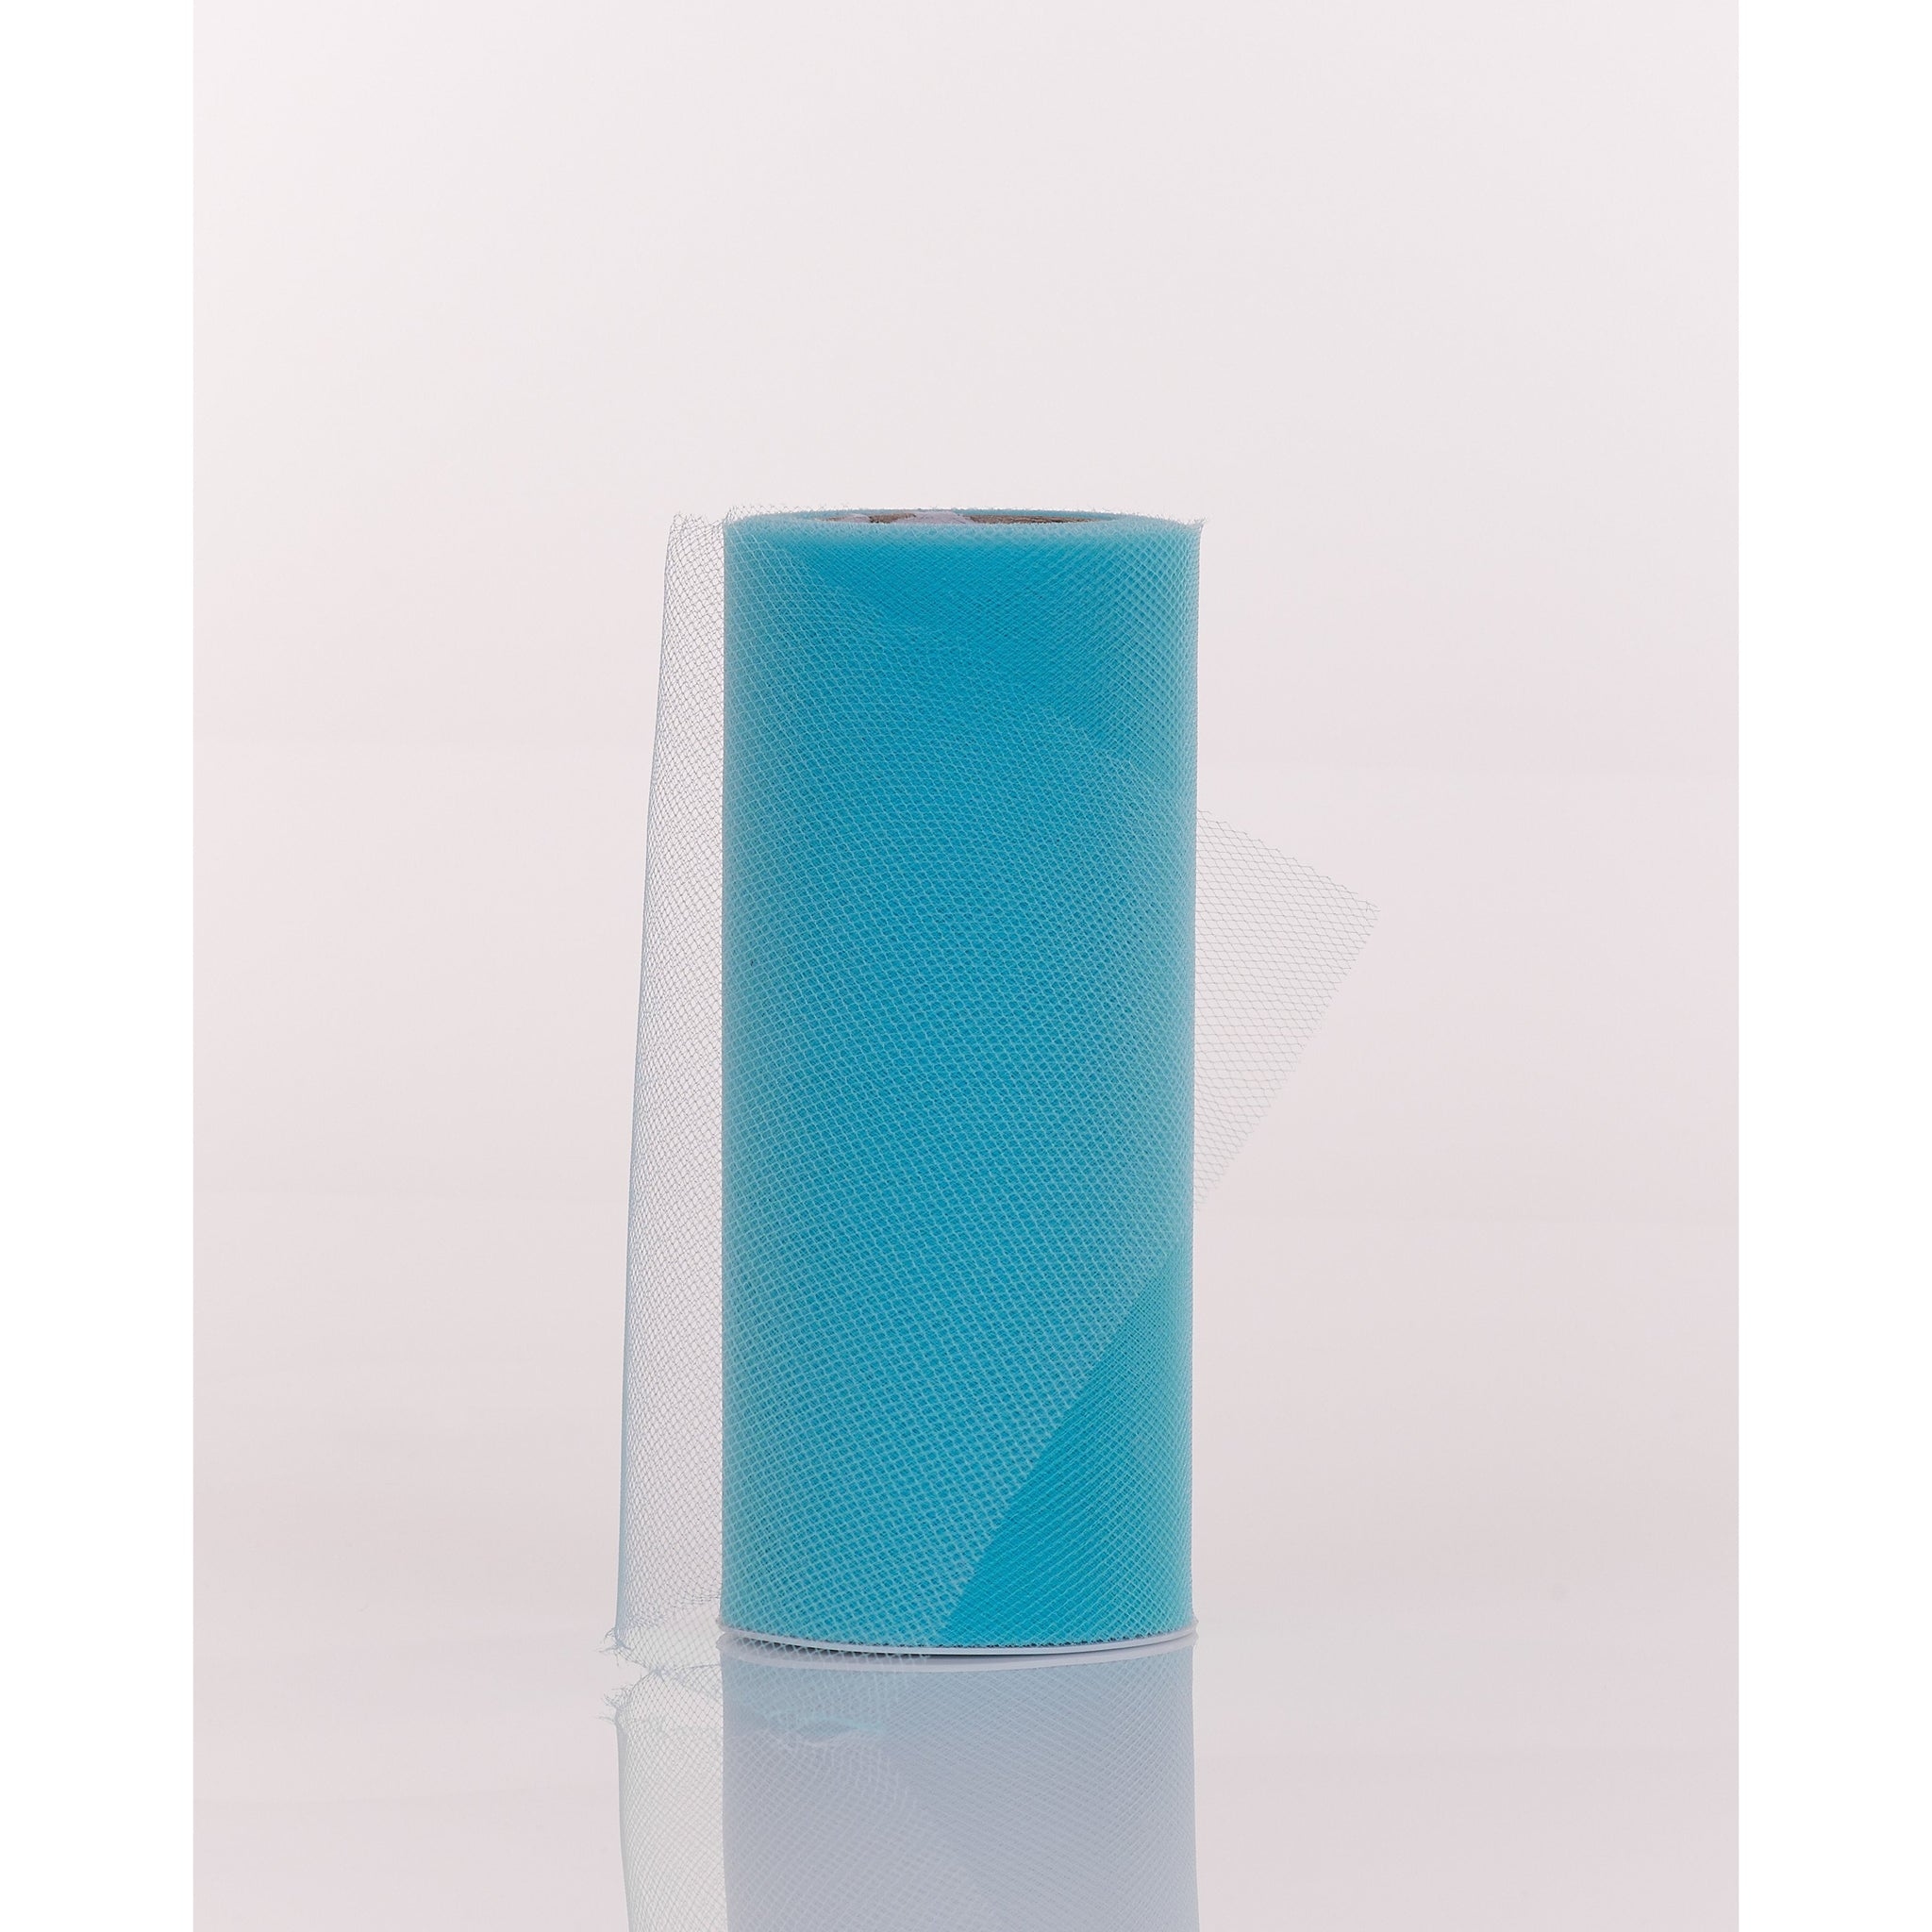 Turquoise Tulle Fabric Roll - 25 Yards